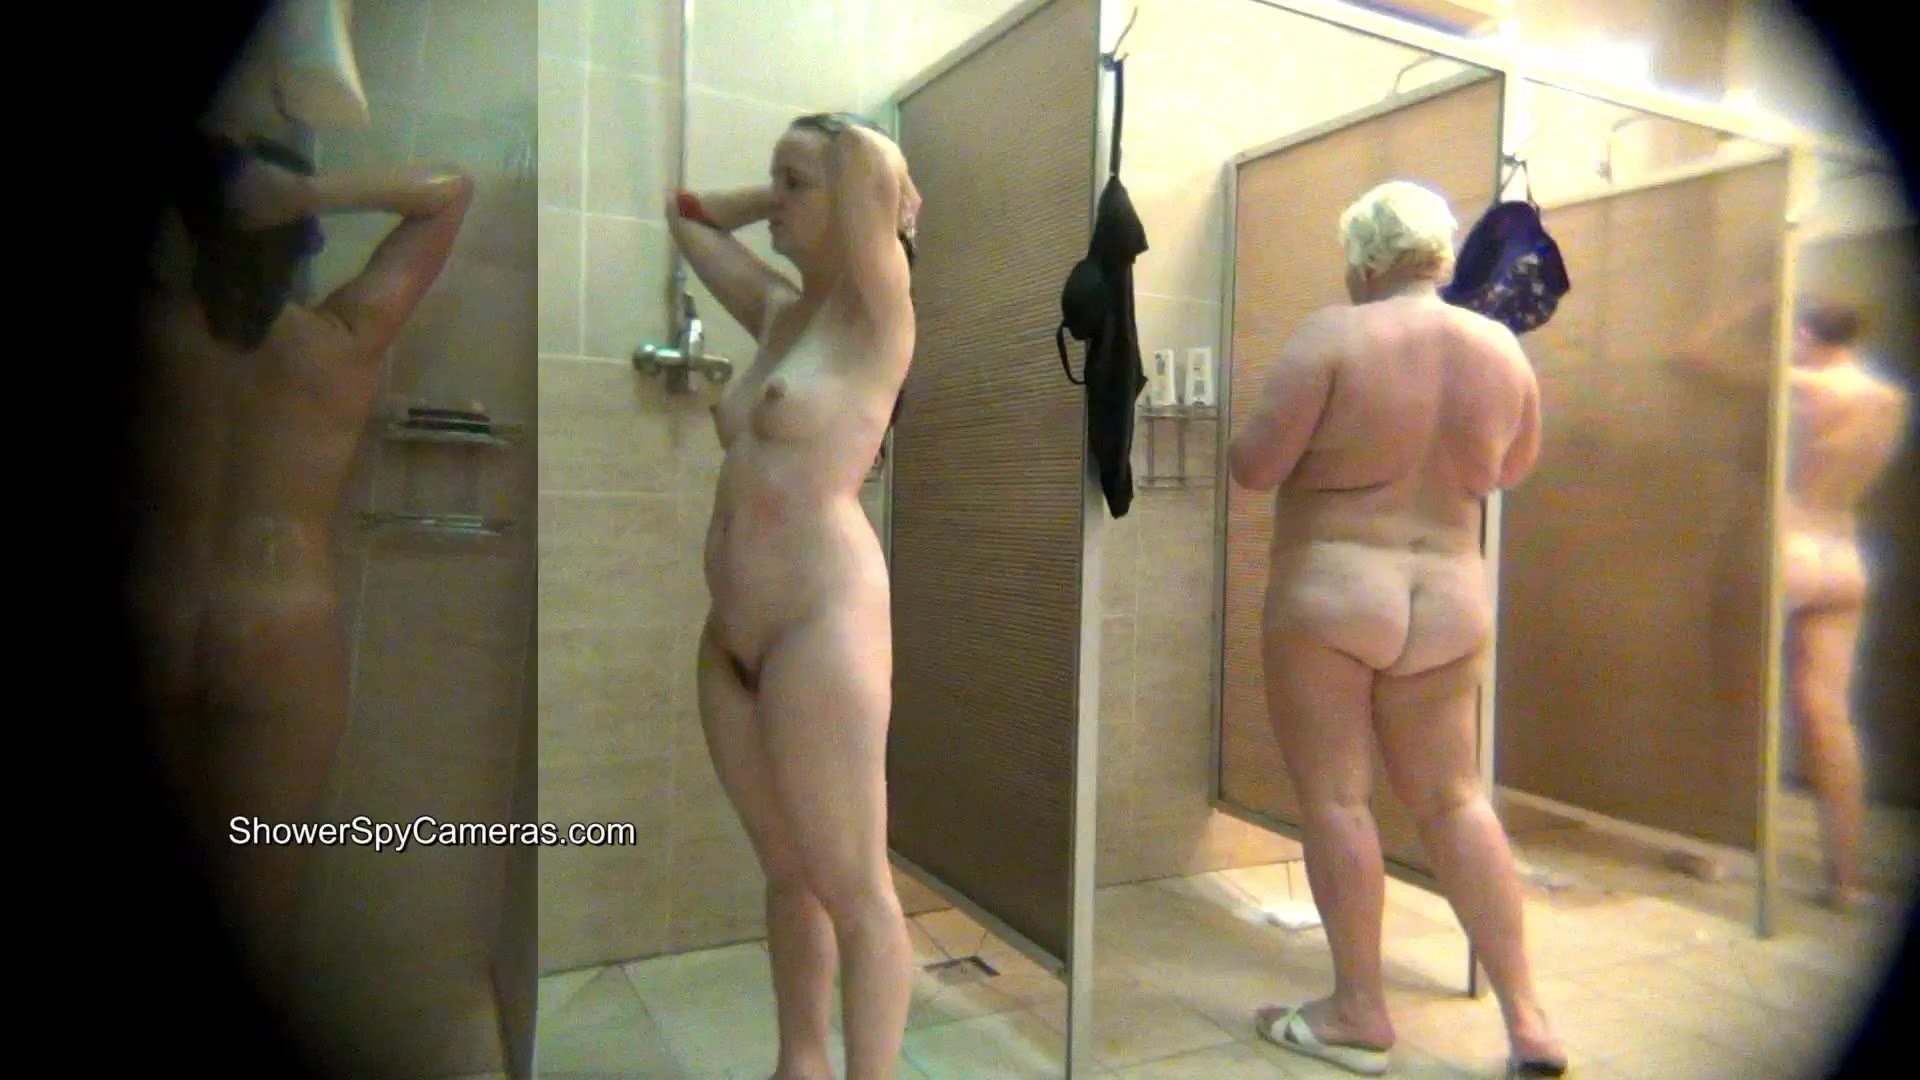 My girlfriend caught nude and naked in shower